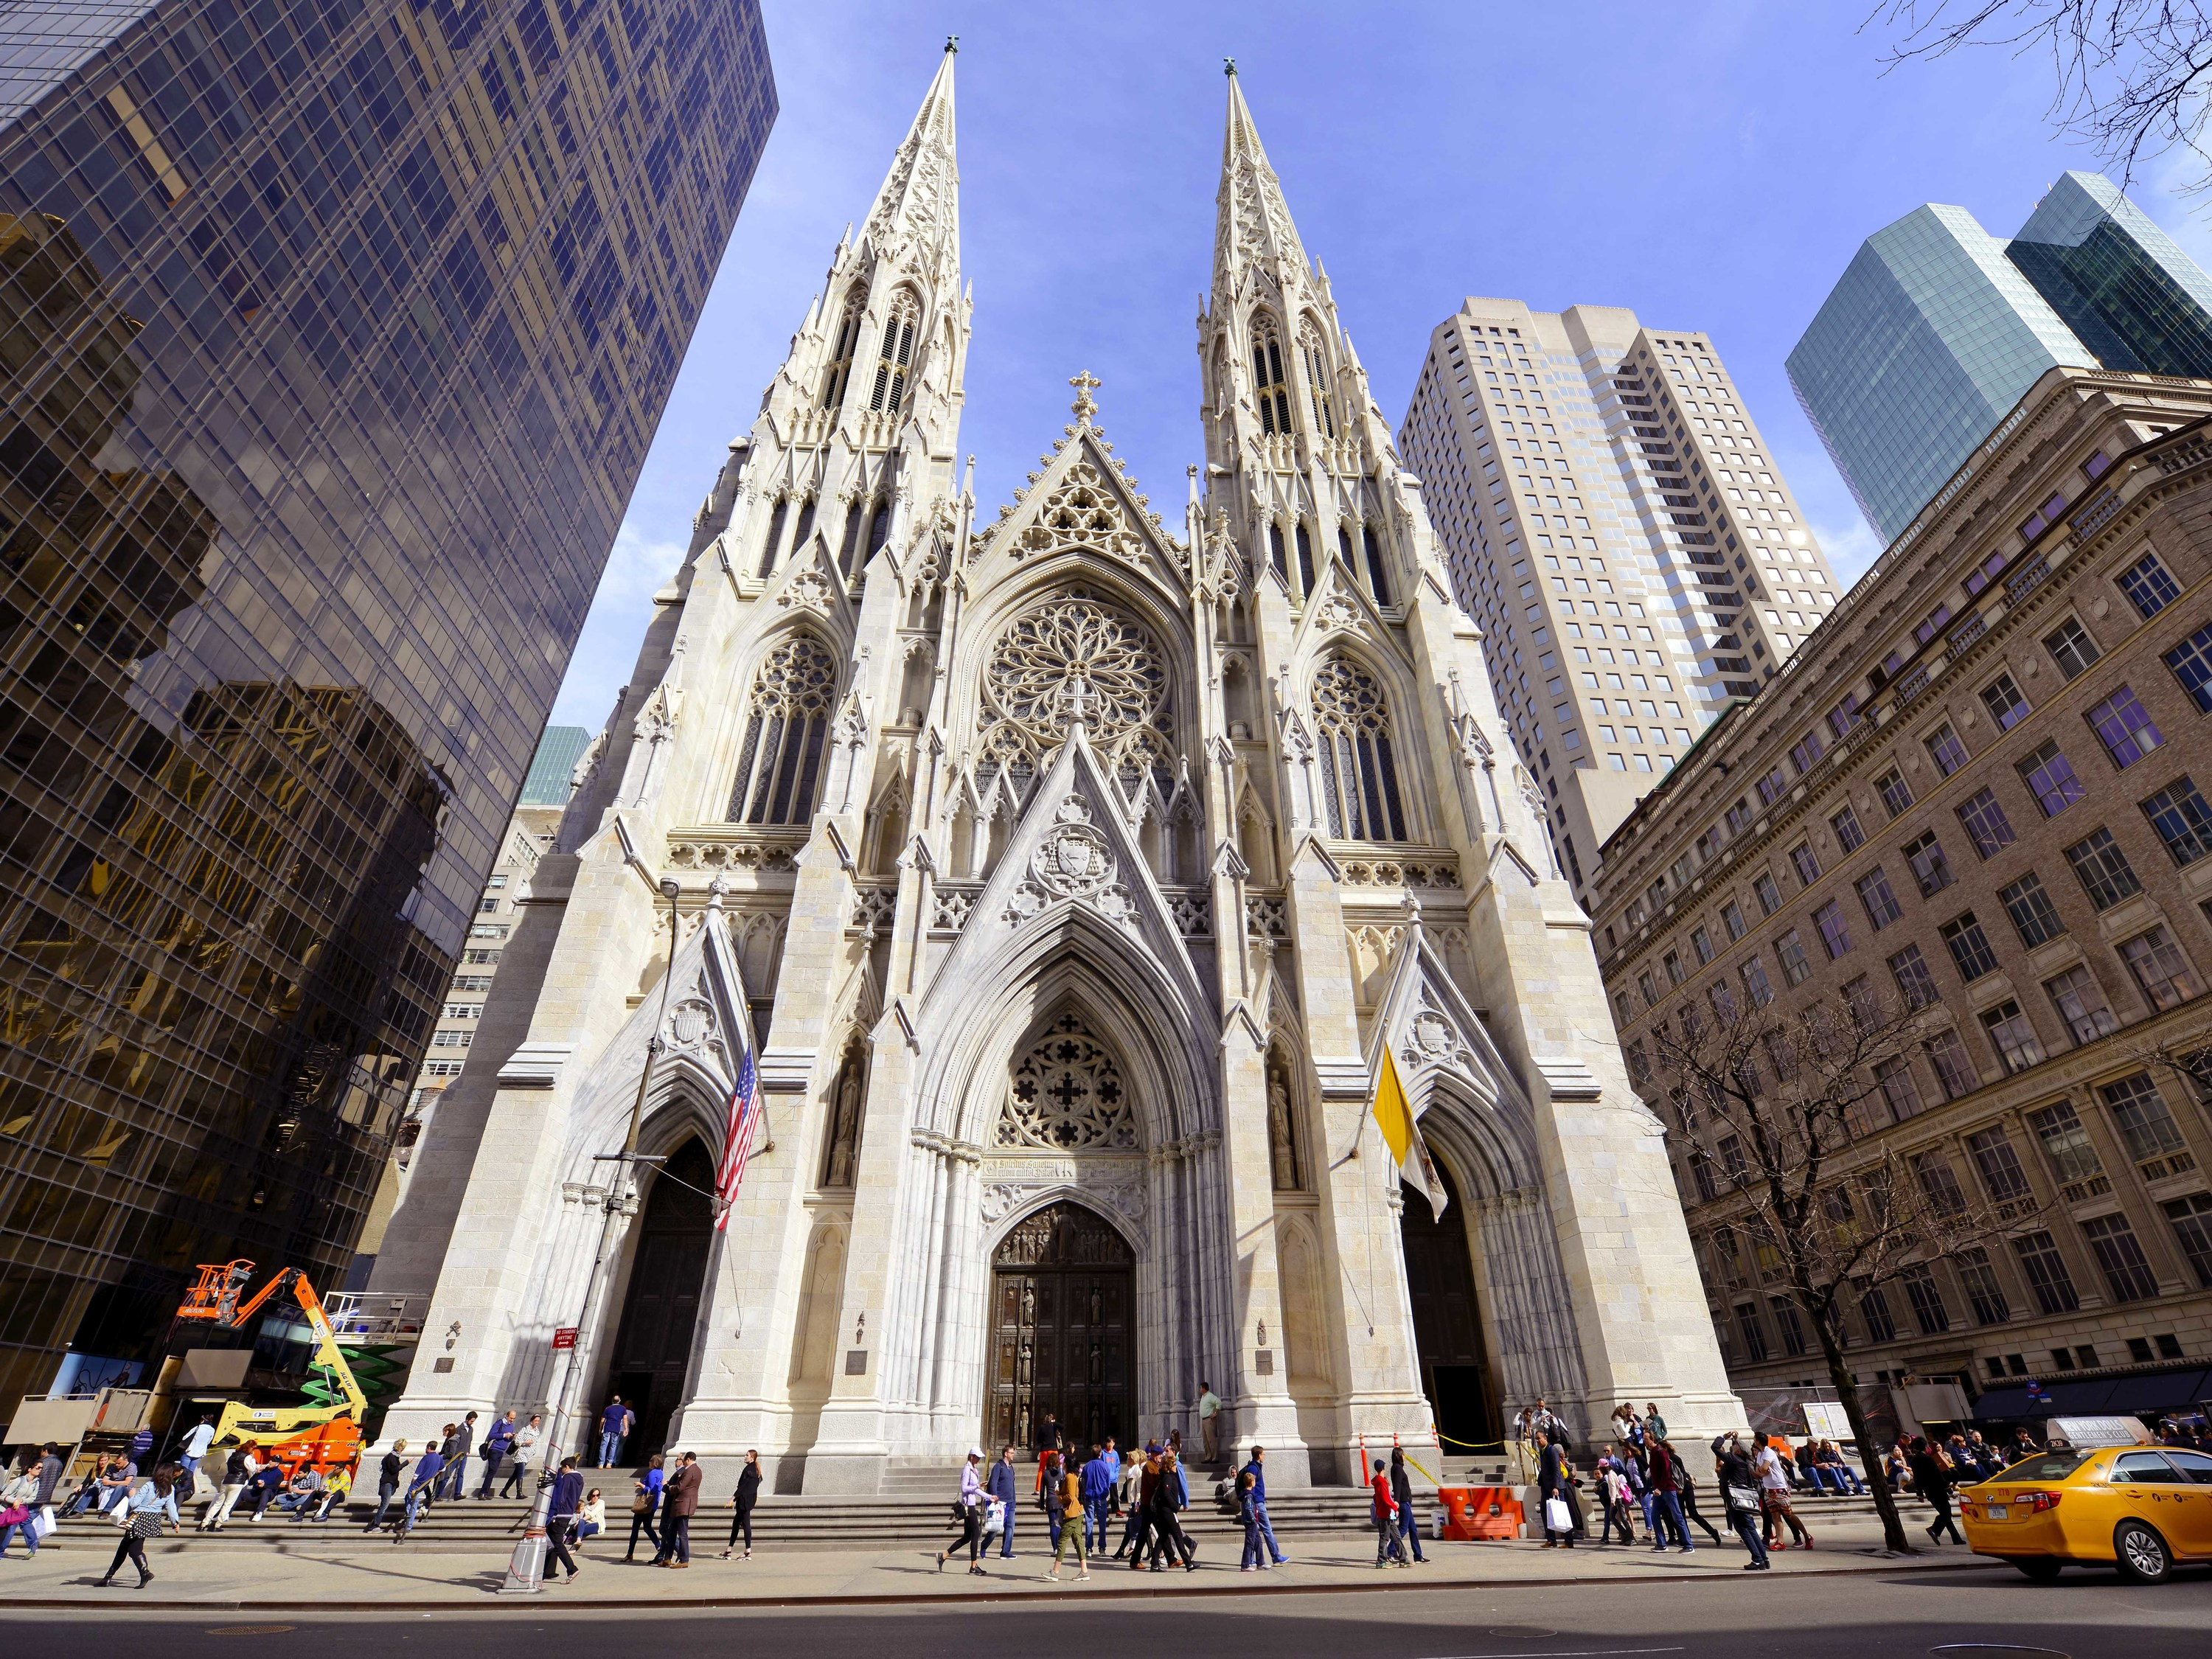 st patrick's cathedral is livestreaming a service for easter